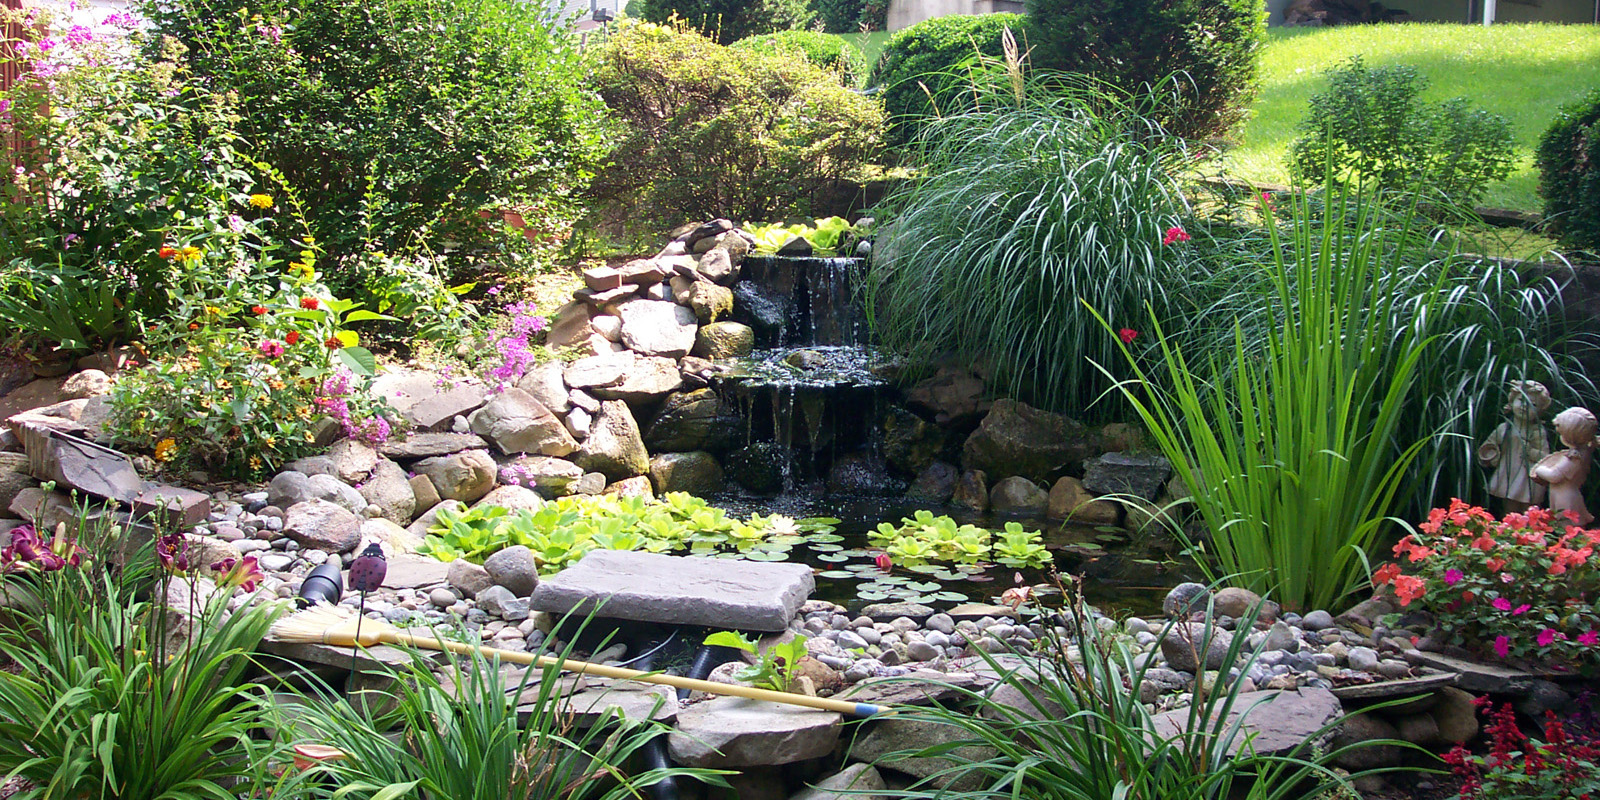 Rent a plant landscape malaysia - Plants can improve ambience home ...